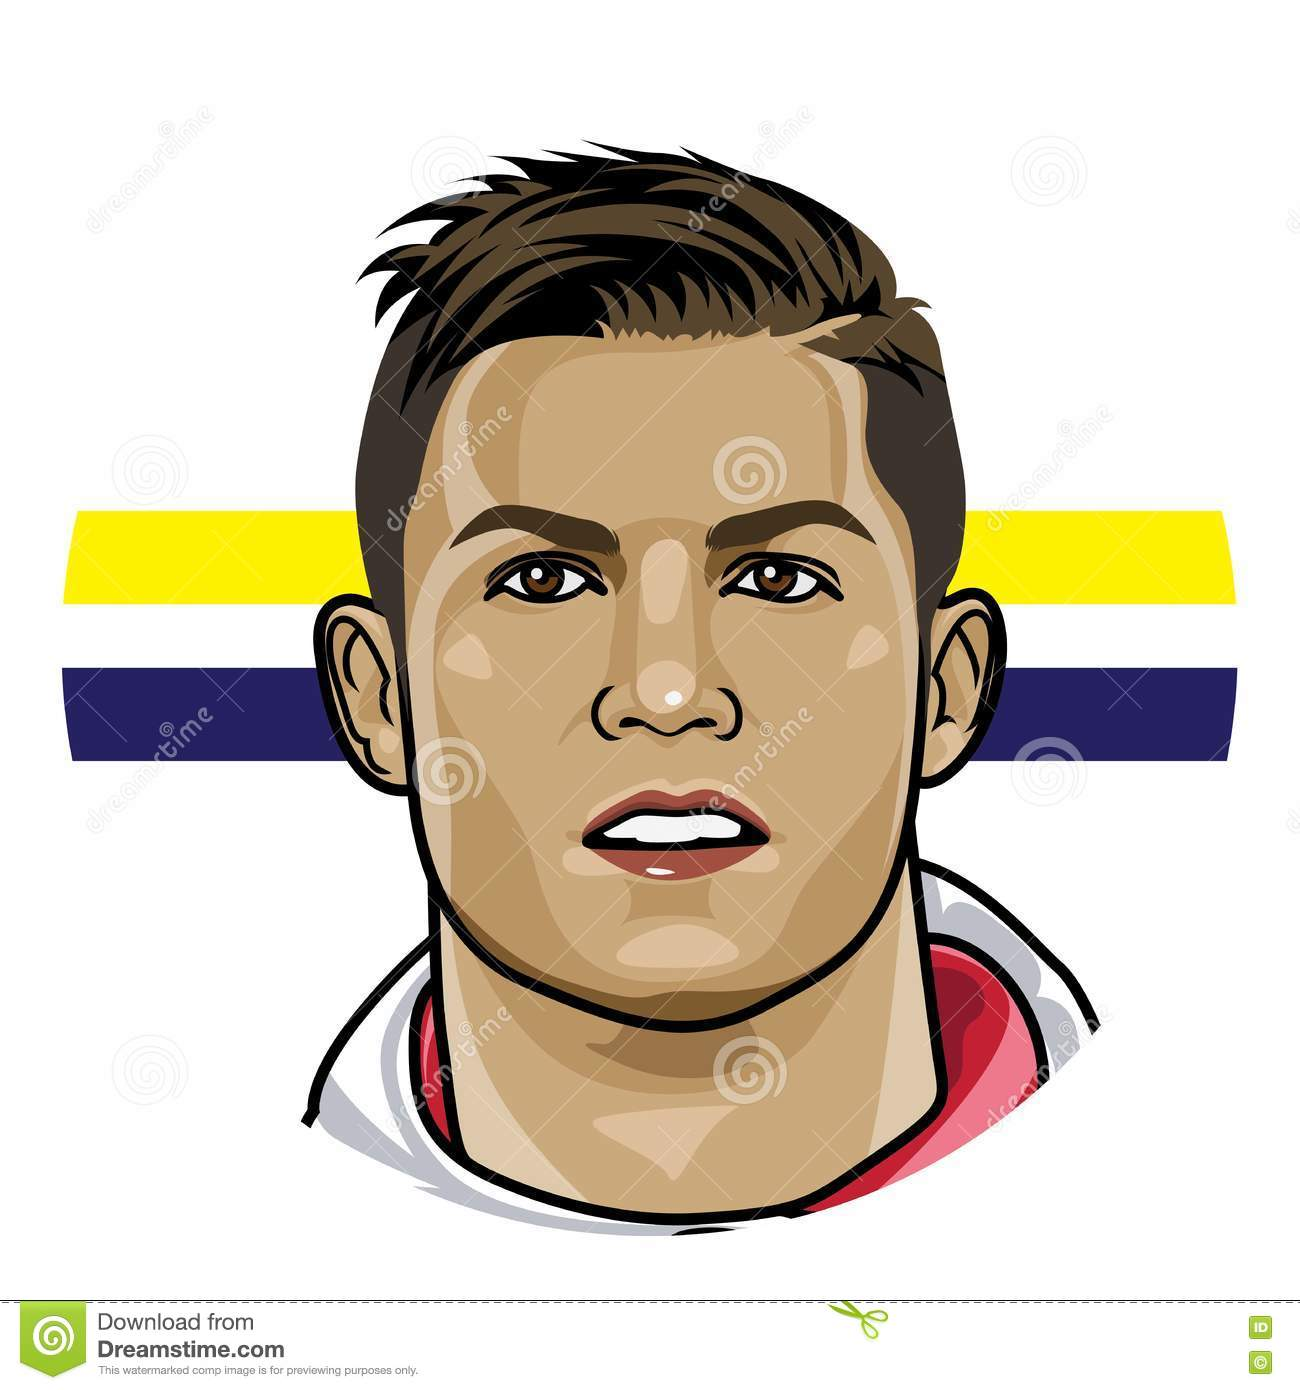 Real madrid clipart banner free download Real madrid clipart cr7 - ClipartFox banner free download